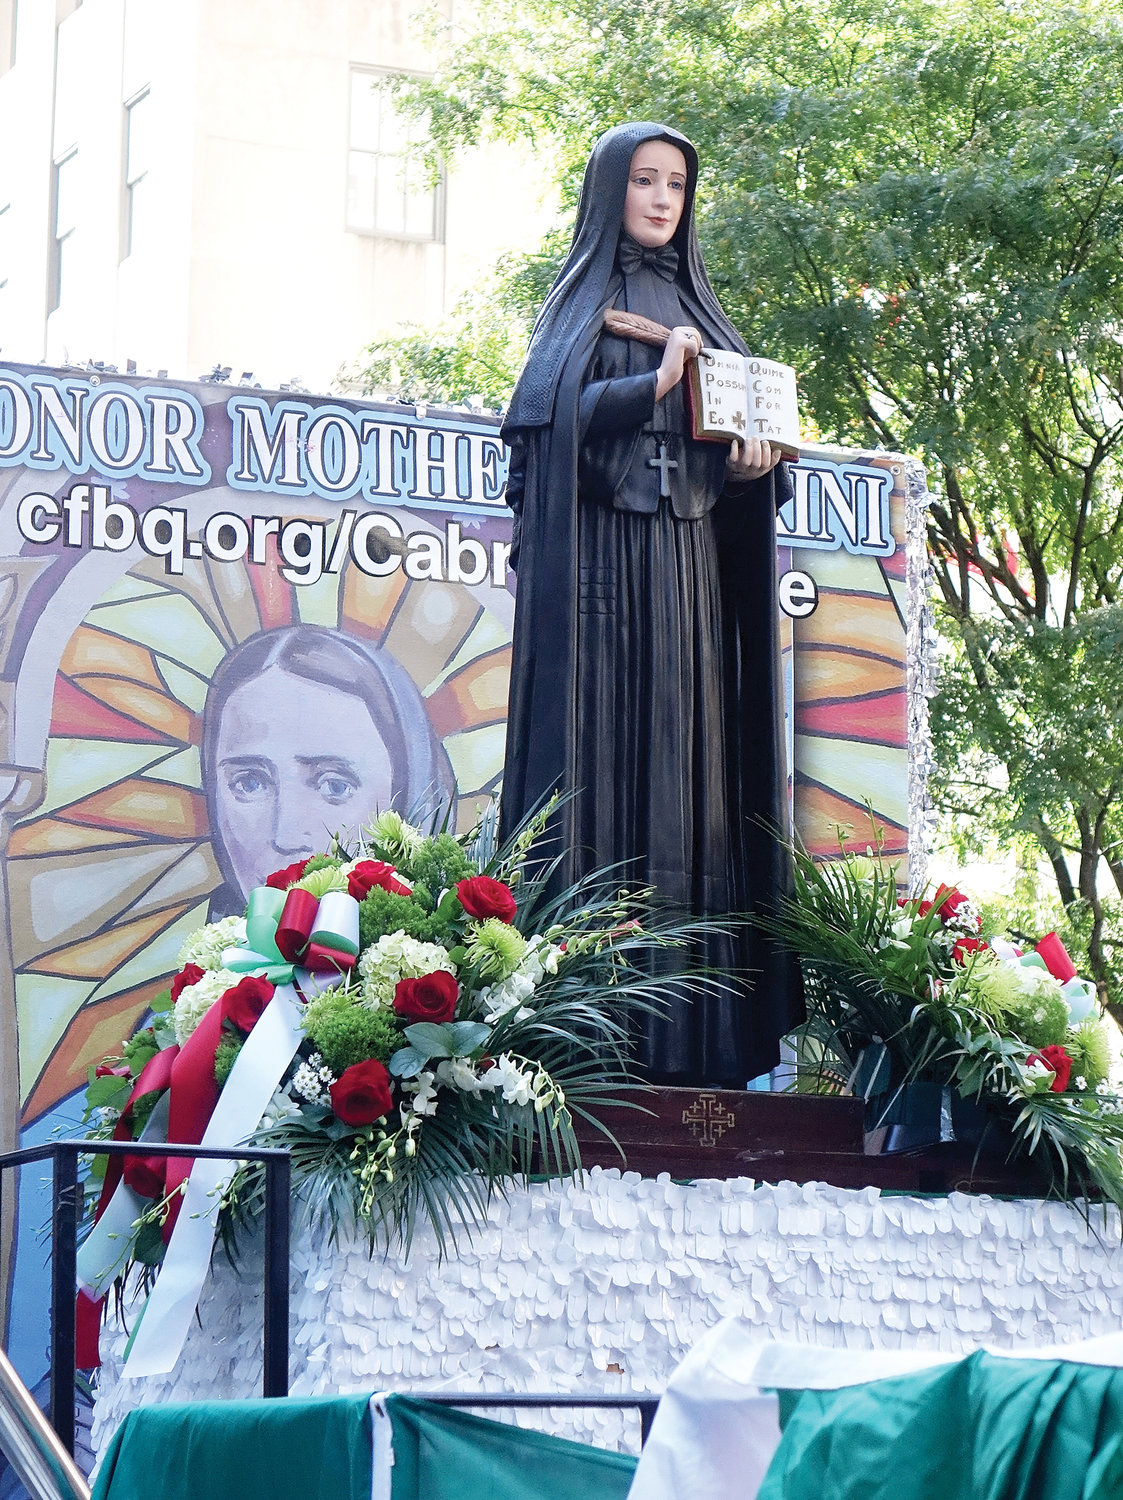 A statue of St. Frances Xavier Cabrini stands on a float in the parade up Fifth Avenue.